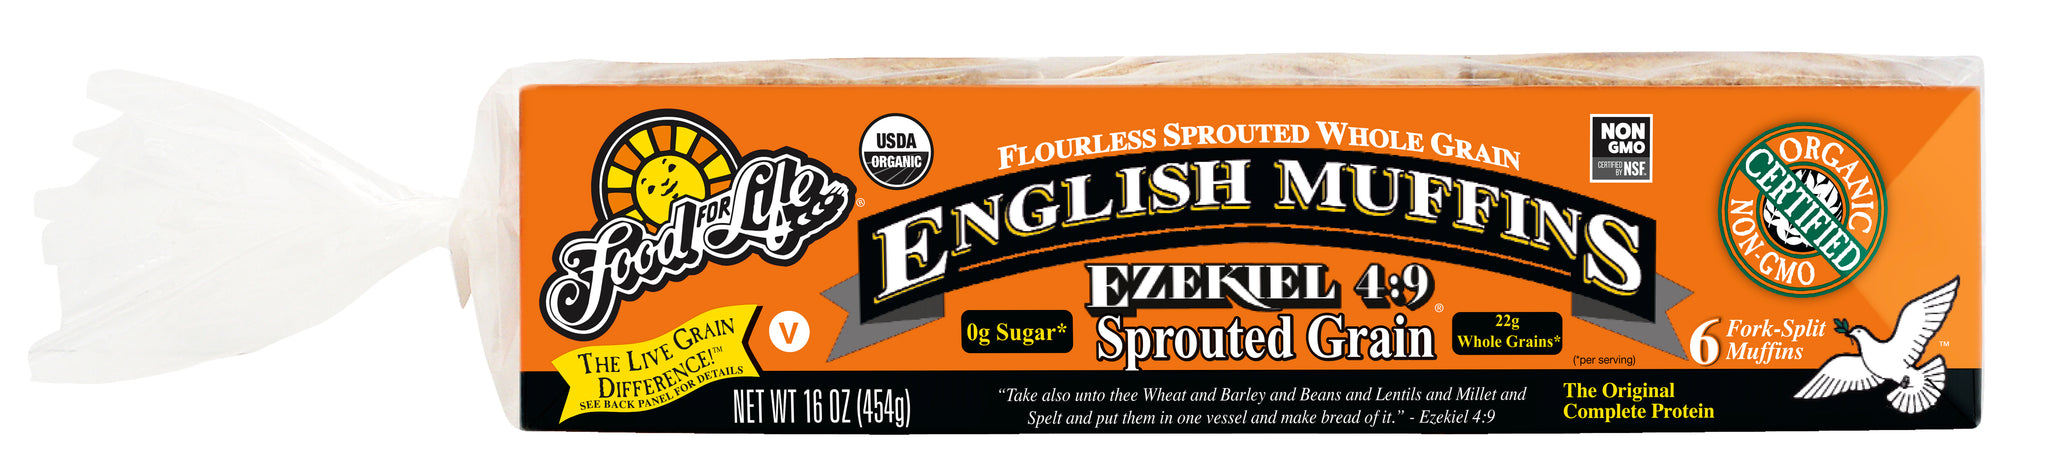 Food For Life Organic Ezekiel 4:9 Sprouted Whole Grain English Muffins, 16 Oz (Pack of 6)